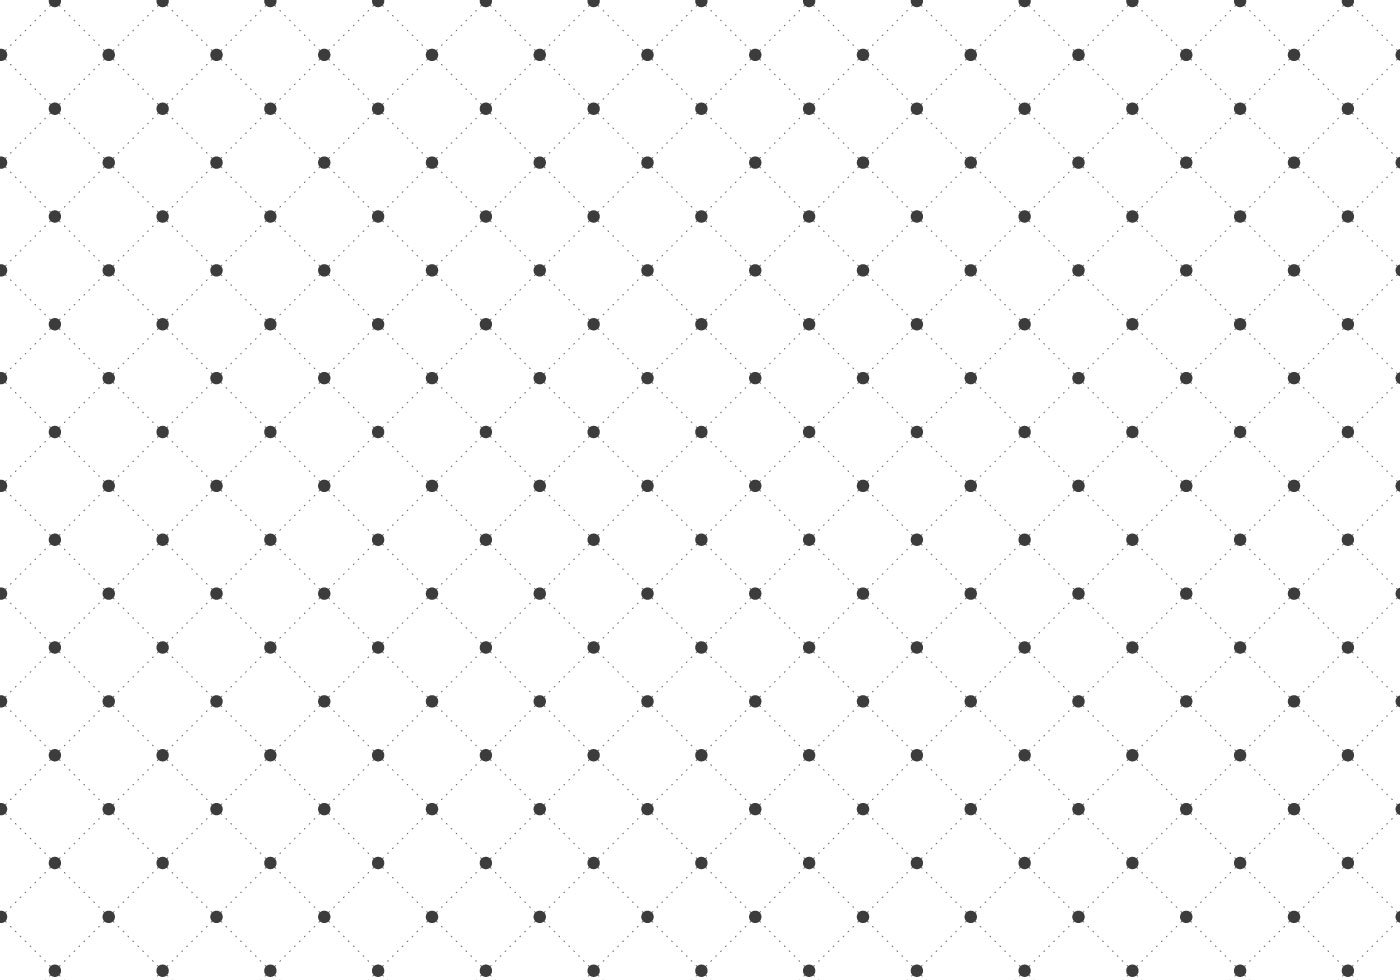 patern essay 100 pattern bingo paper by the bundle $1296 add to cart 3on verticle red white & blue by the bundle $1296 add to cart 3on verticle red white & blue by the case.